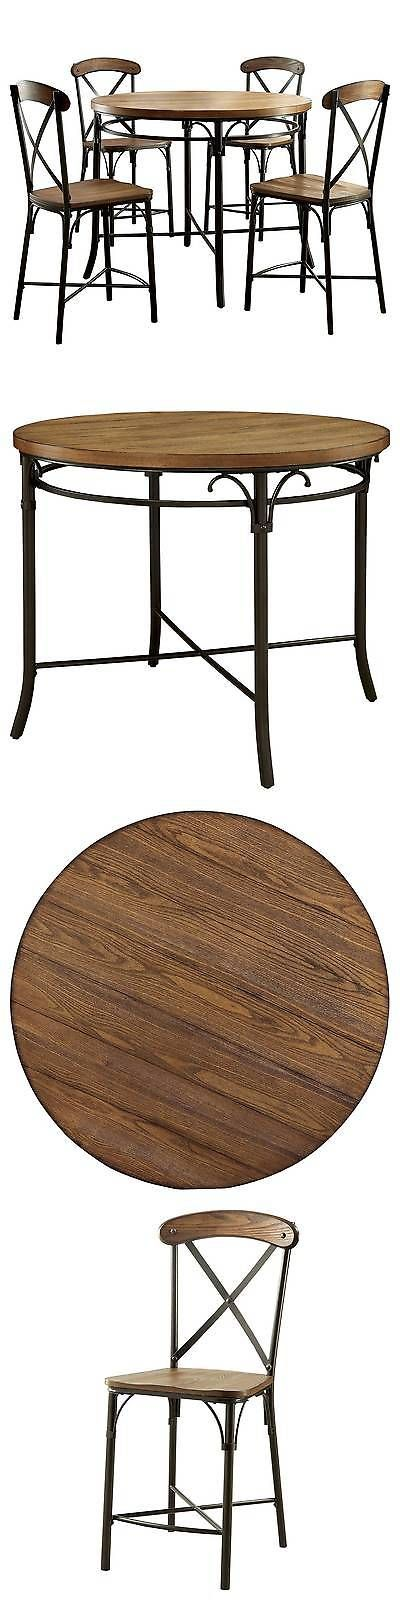 Sets 98478: 5-Piece Industrial Round Counter Height Table Set - Bronze BUY IT NOW ONLY: $799.99